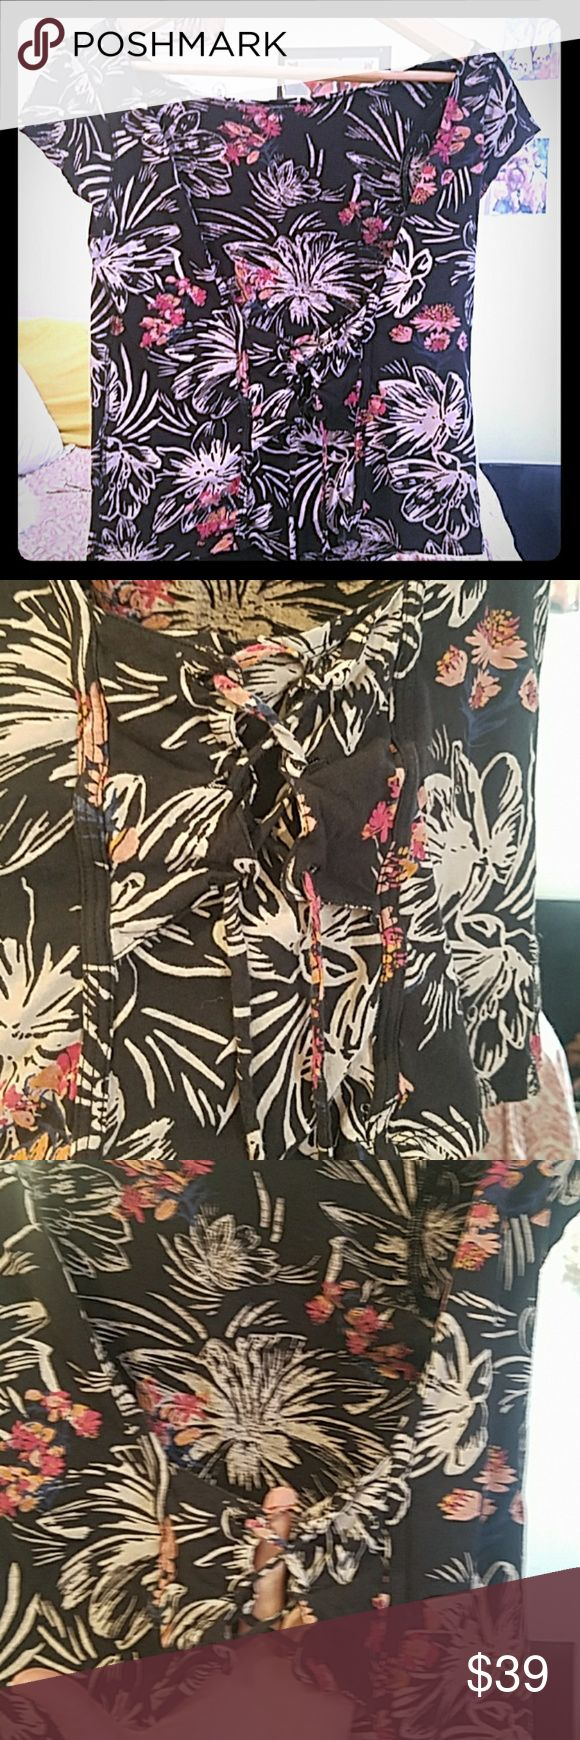 RARE Free People corset low back floral top Really cool shirt. Low scoop back, soft cotton, cap sleeves, corset detail with functional lacing at back. By we the free for free people. Size M, could fit sizes 2-8.  SELECT SIZE MEDIUM AT CHECKOUT ONLY ONE ITEM FOR SALE (M) Bundle 2 items and receive a big private discount... Free People Tops